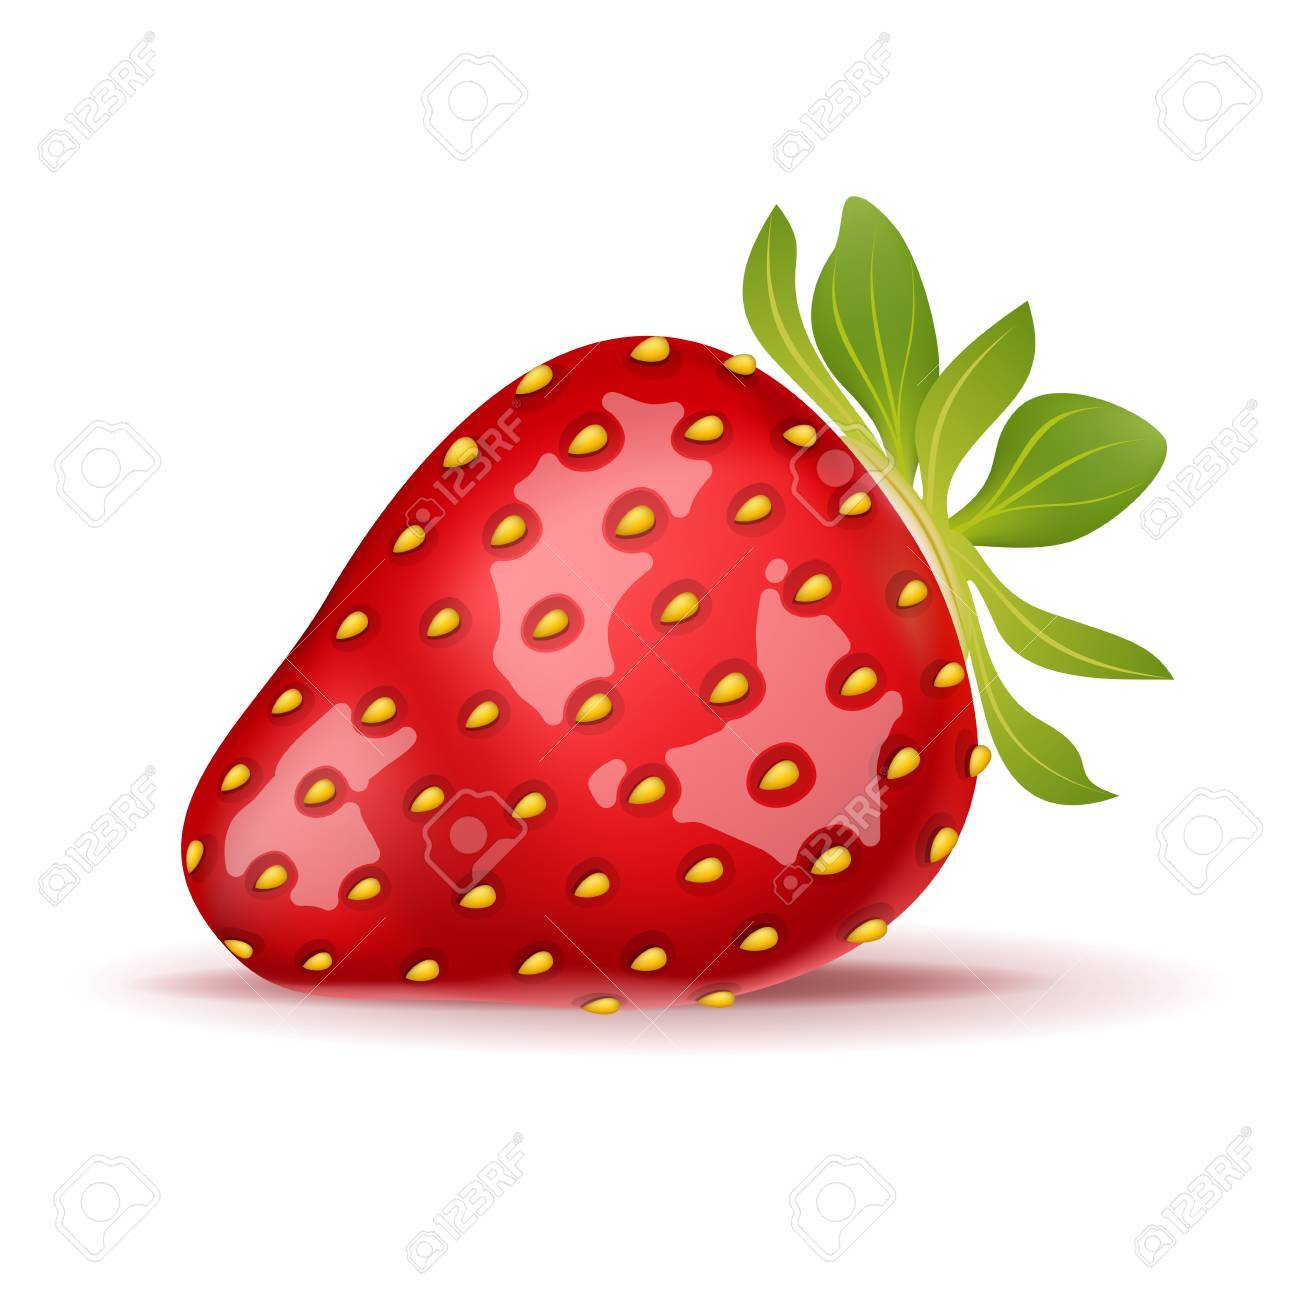 Ripe strawberry isolated on white  illustration Stock Vector - 15158917